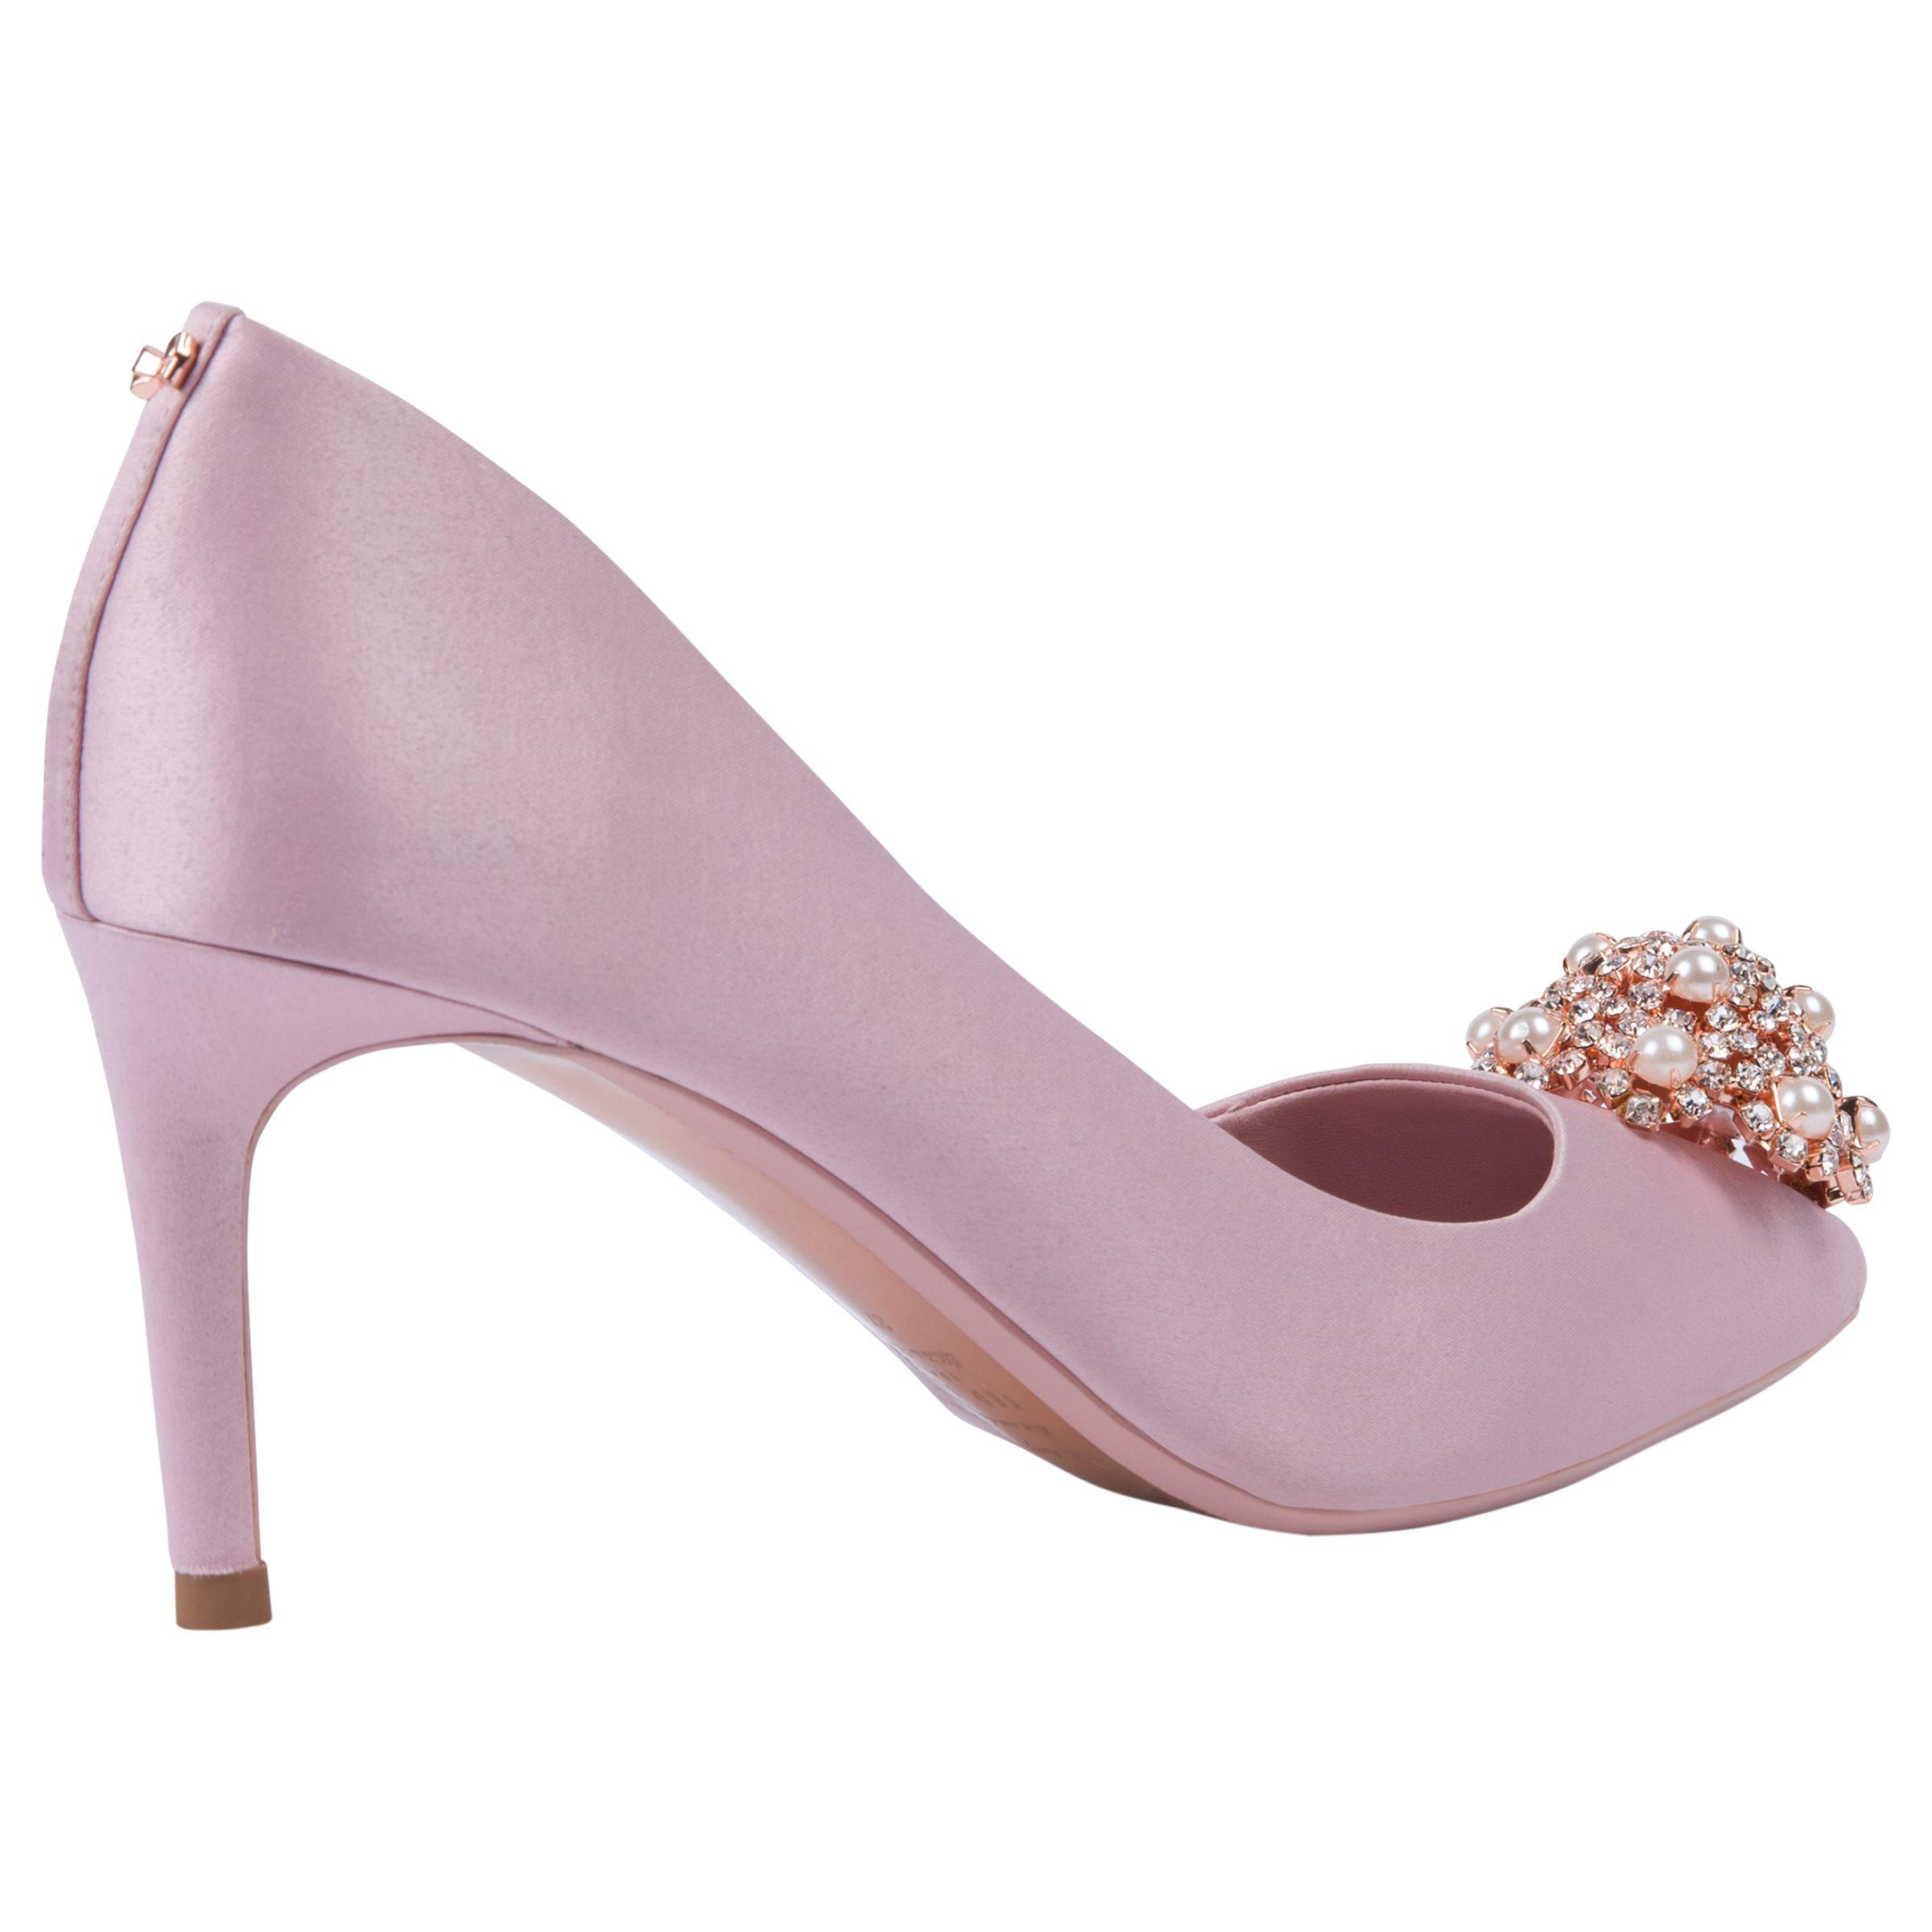 0f9cf781a20 Ted Baker Dahrlin Embellished Court Shoes in Pink - Lyst